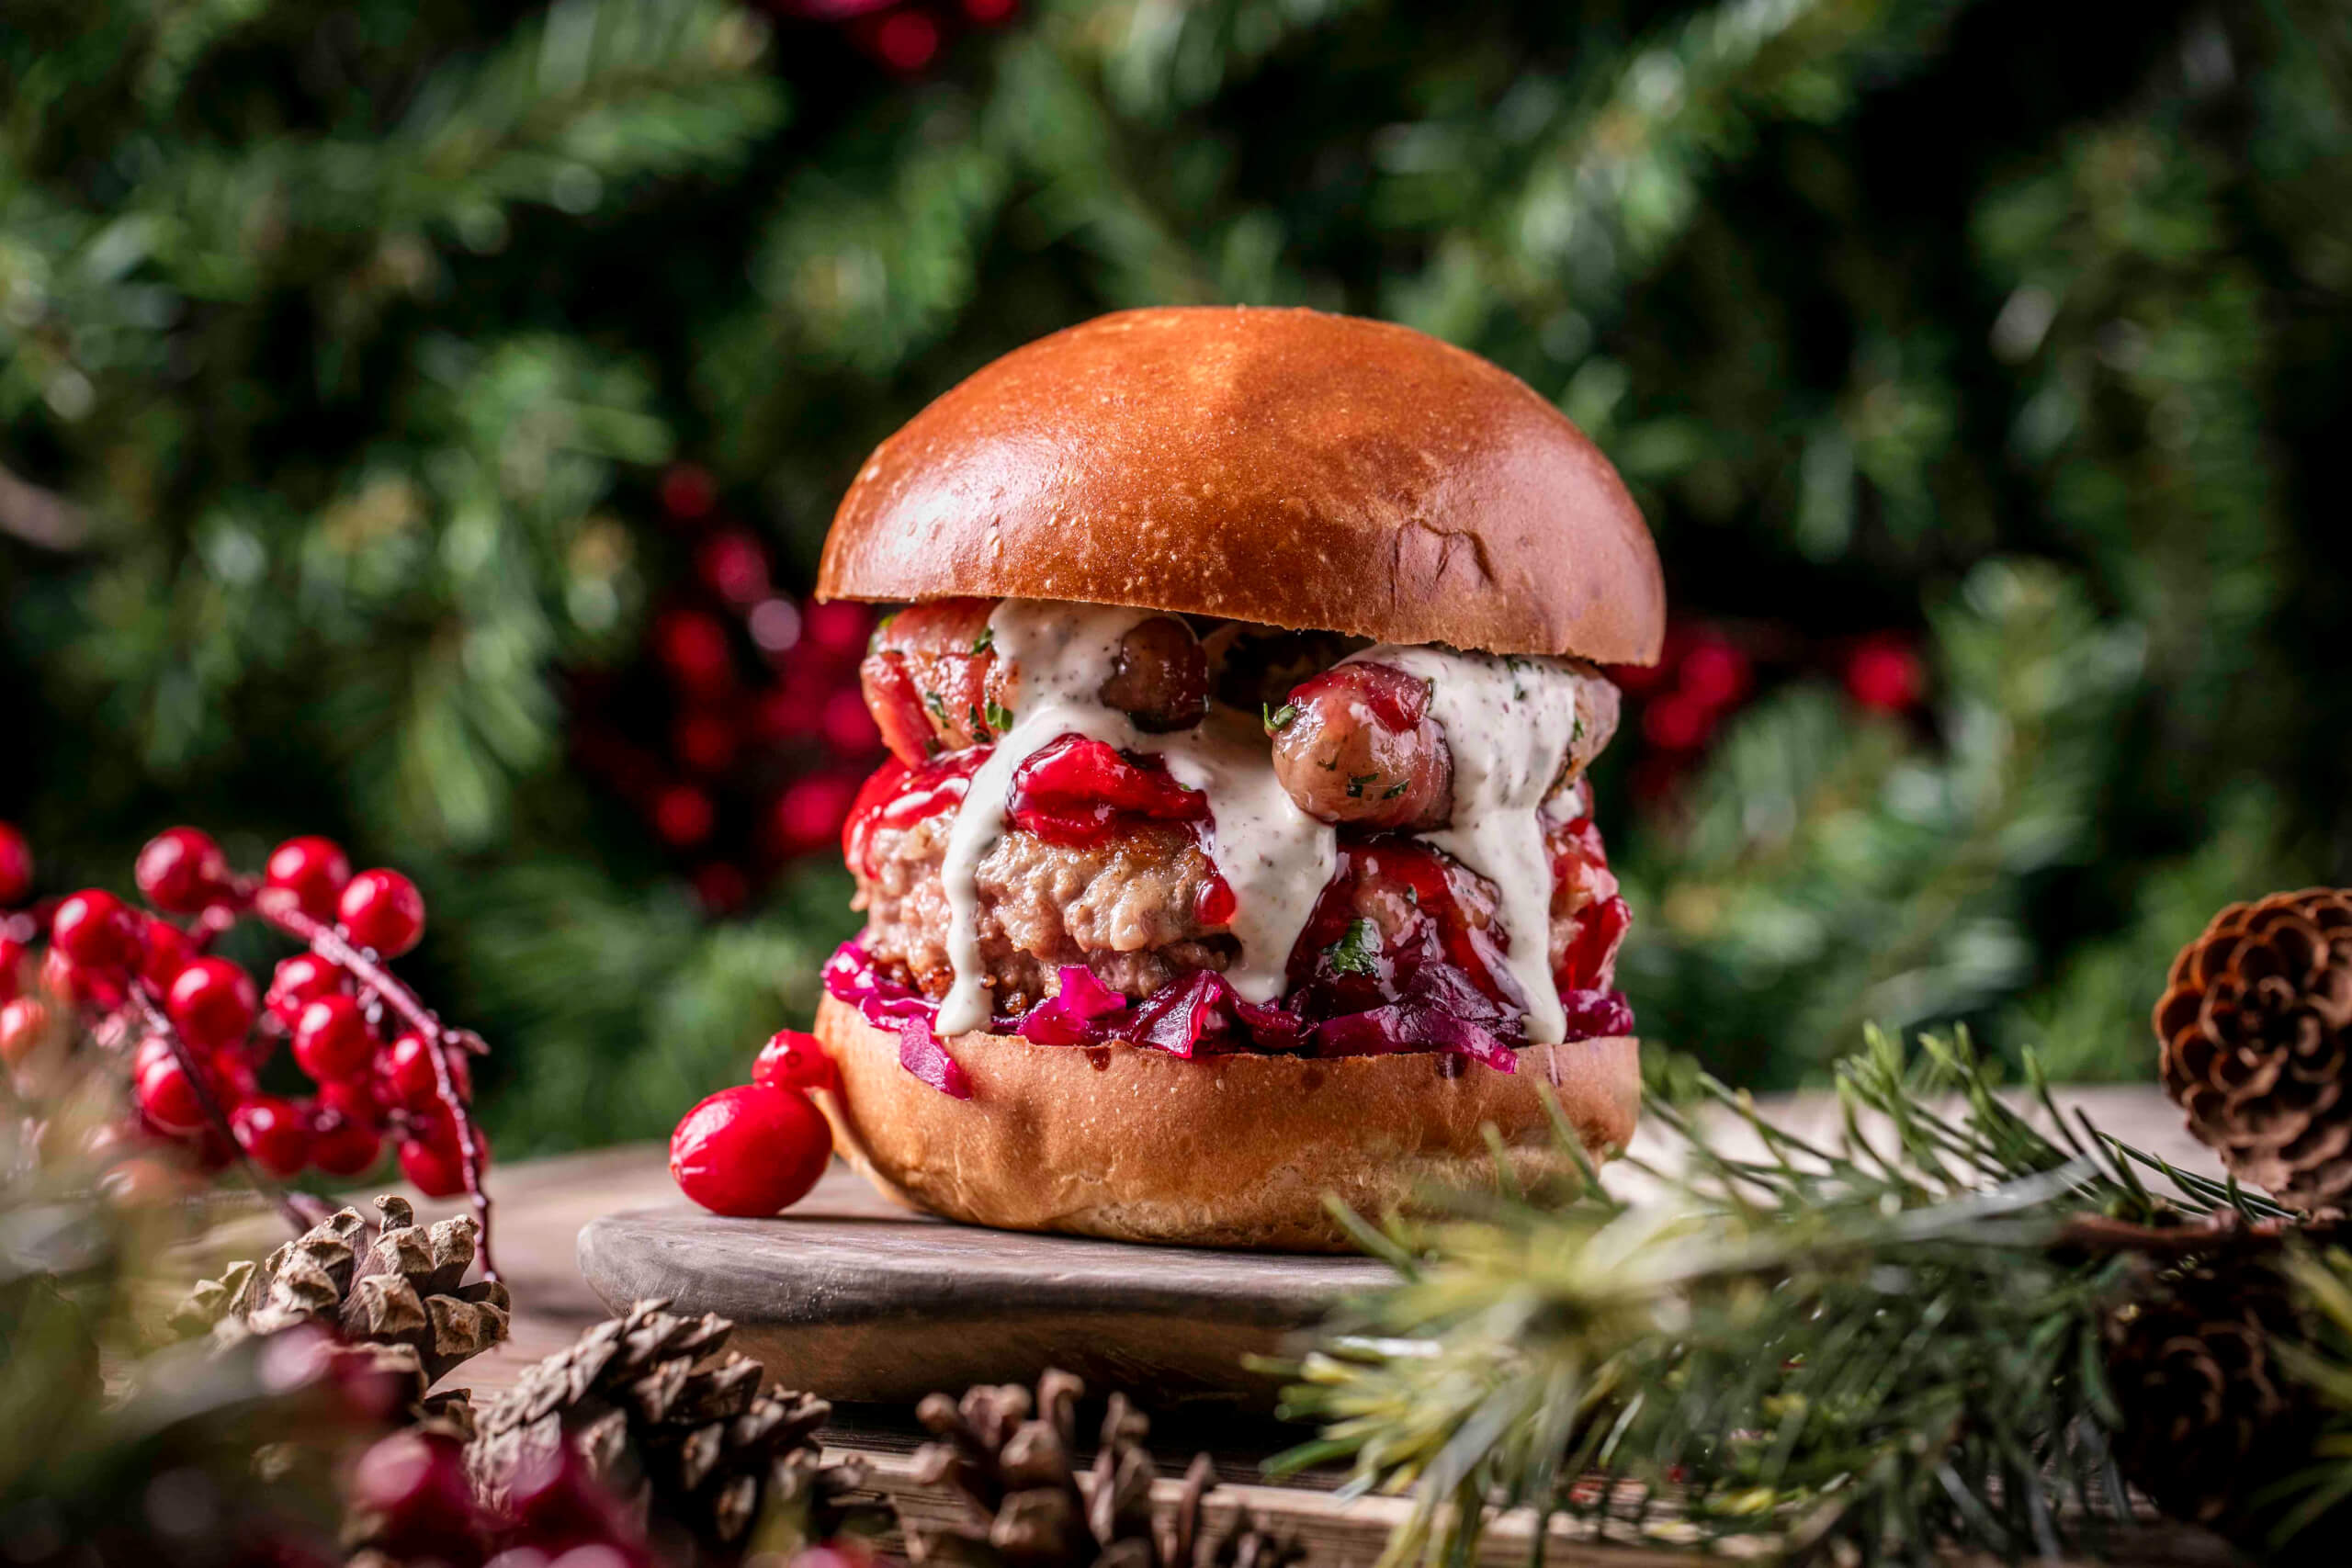 Christmas Burgers in London, best Christmas Burgers in London, top Christmas Burgers in London, Christmas Burgers London